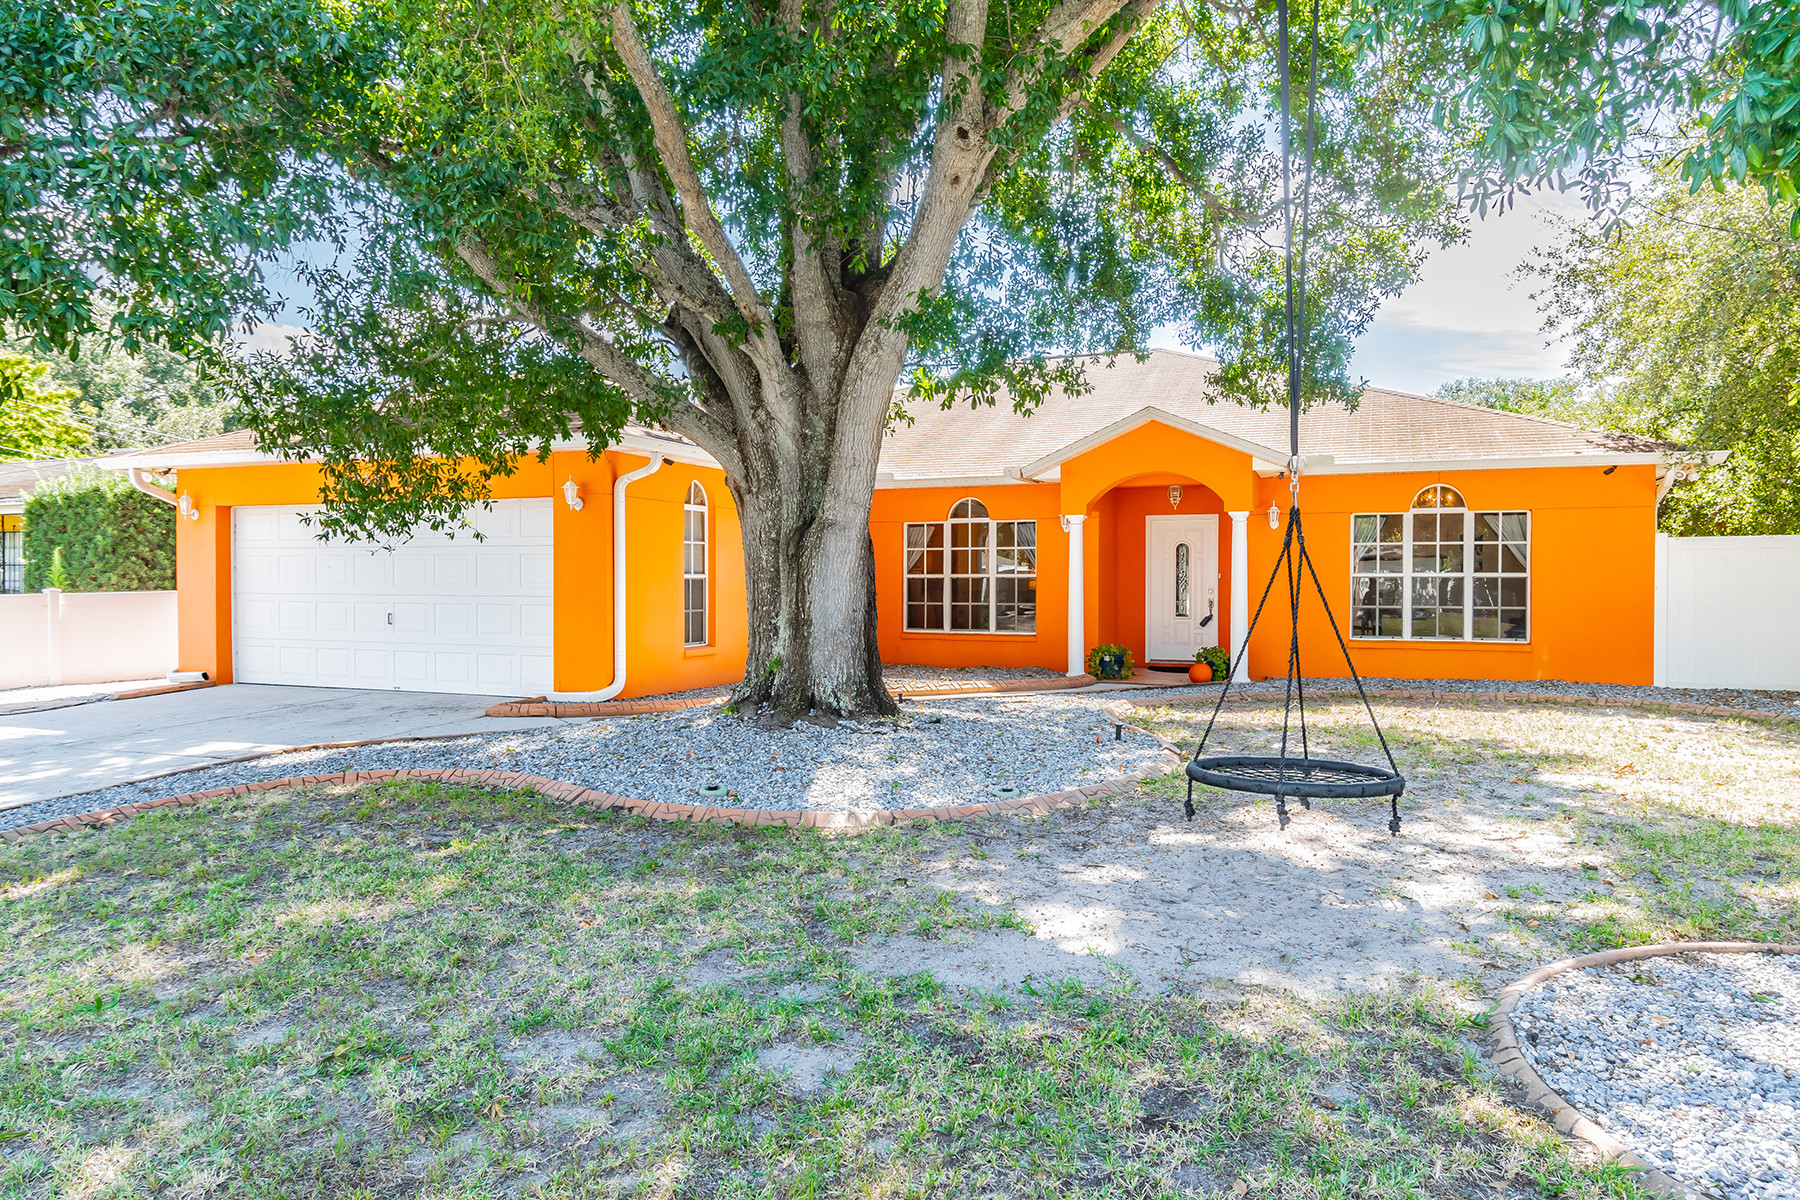 3-Bedroom House In Ballast Point